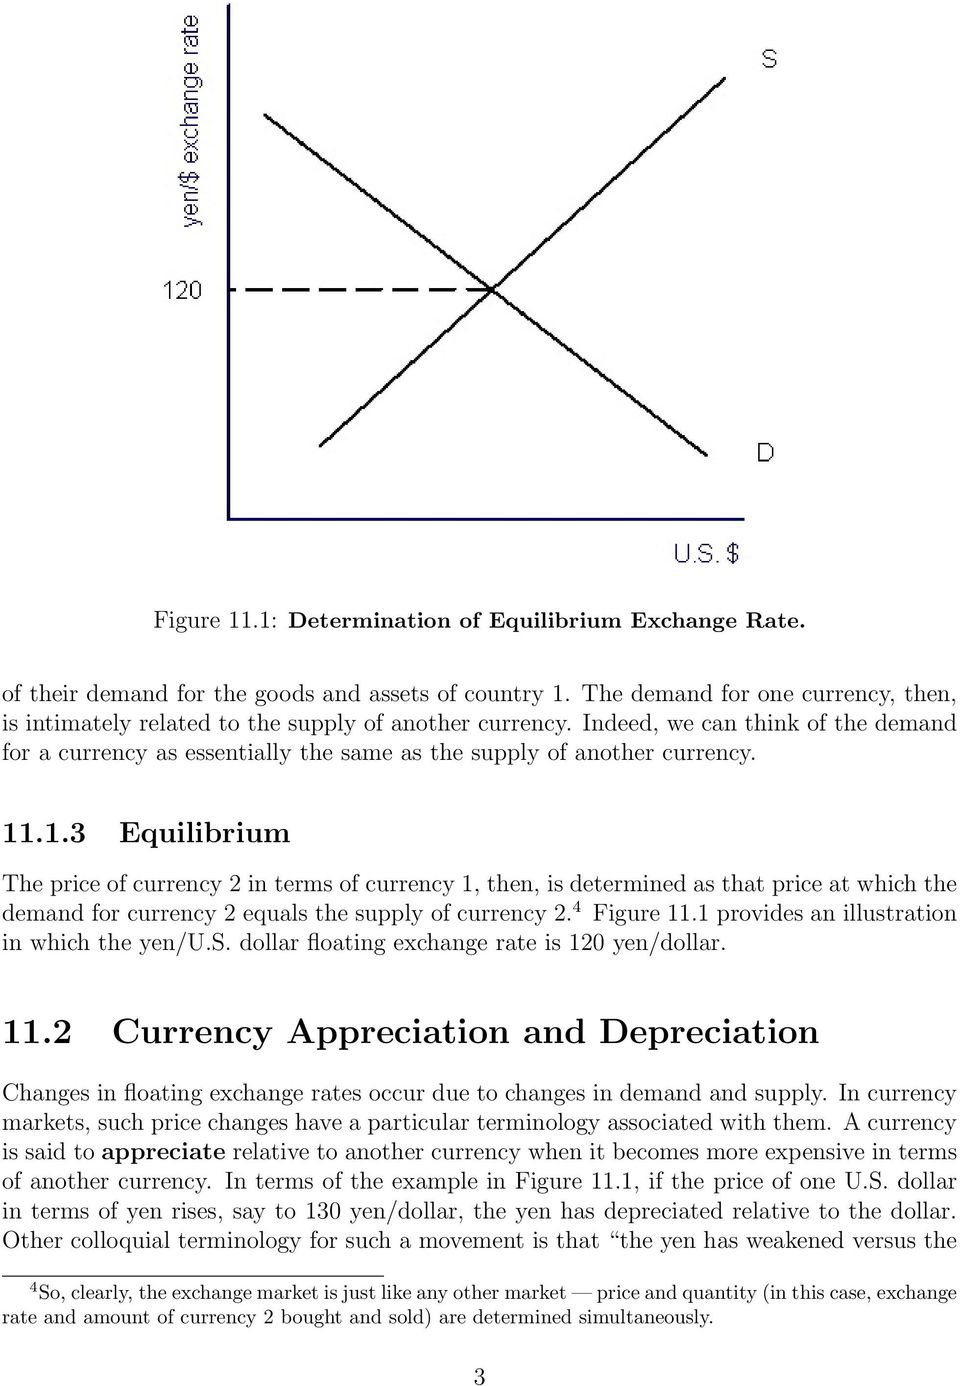 11.1.3 Equilibrium The price of currency 2 in terms of currency 1, then, is determined as that price at which the demand for currency 2 equals the supply of currency 2. 4 Figure 11.